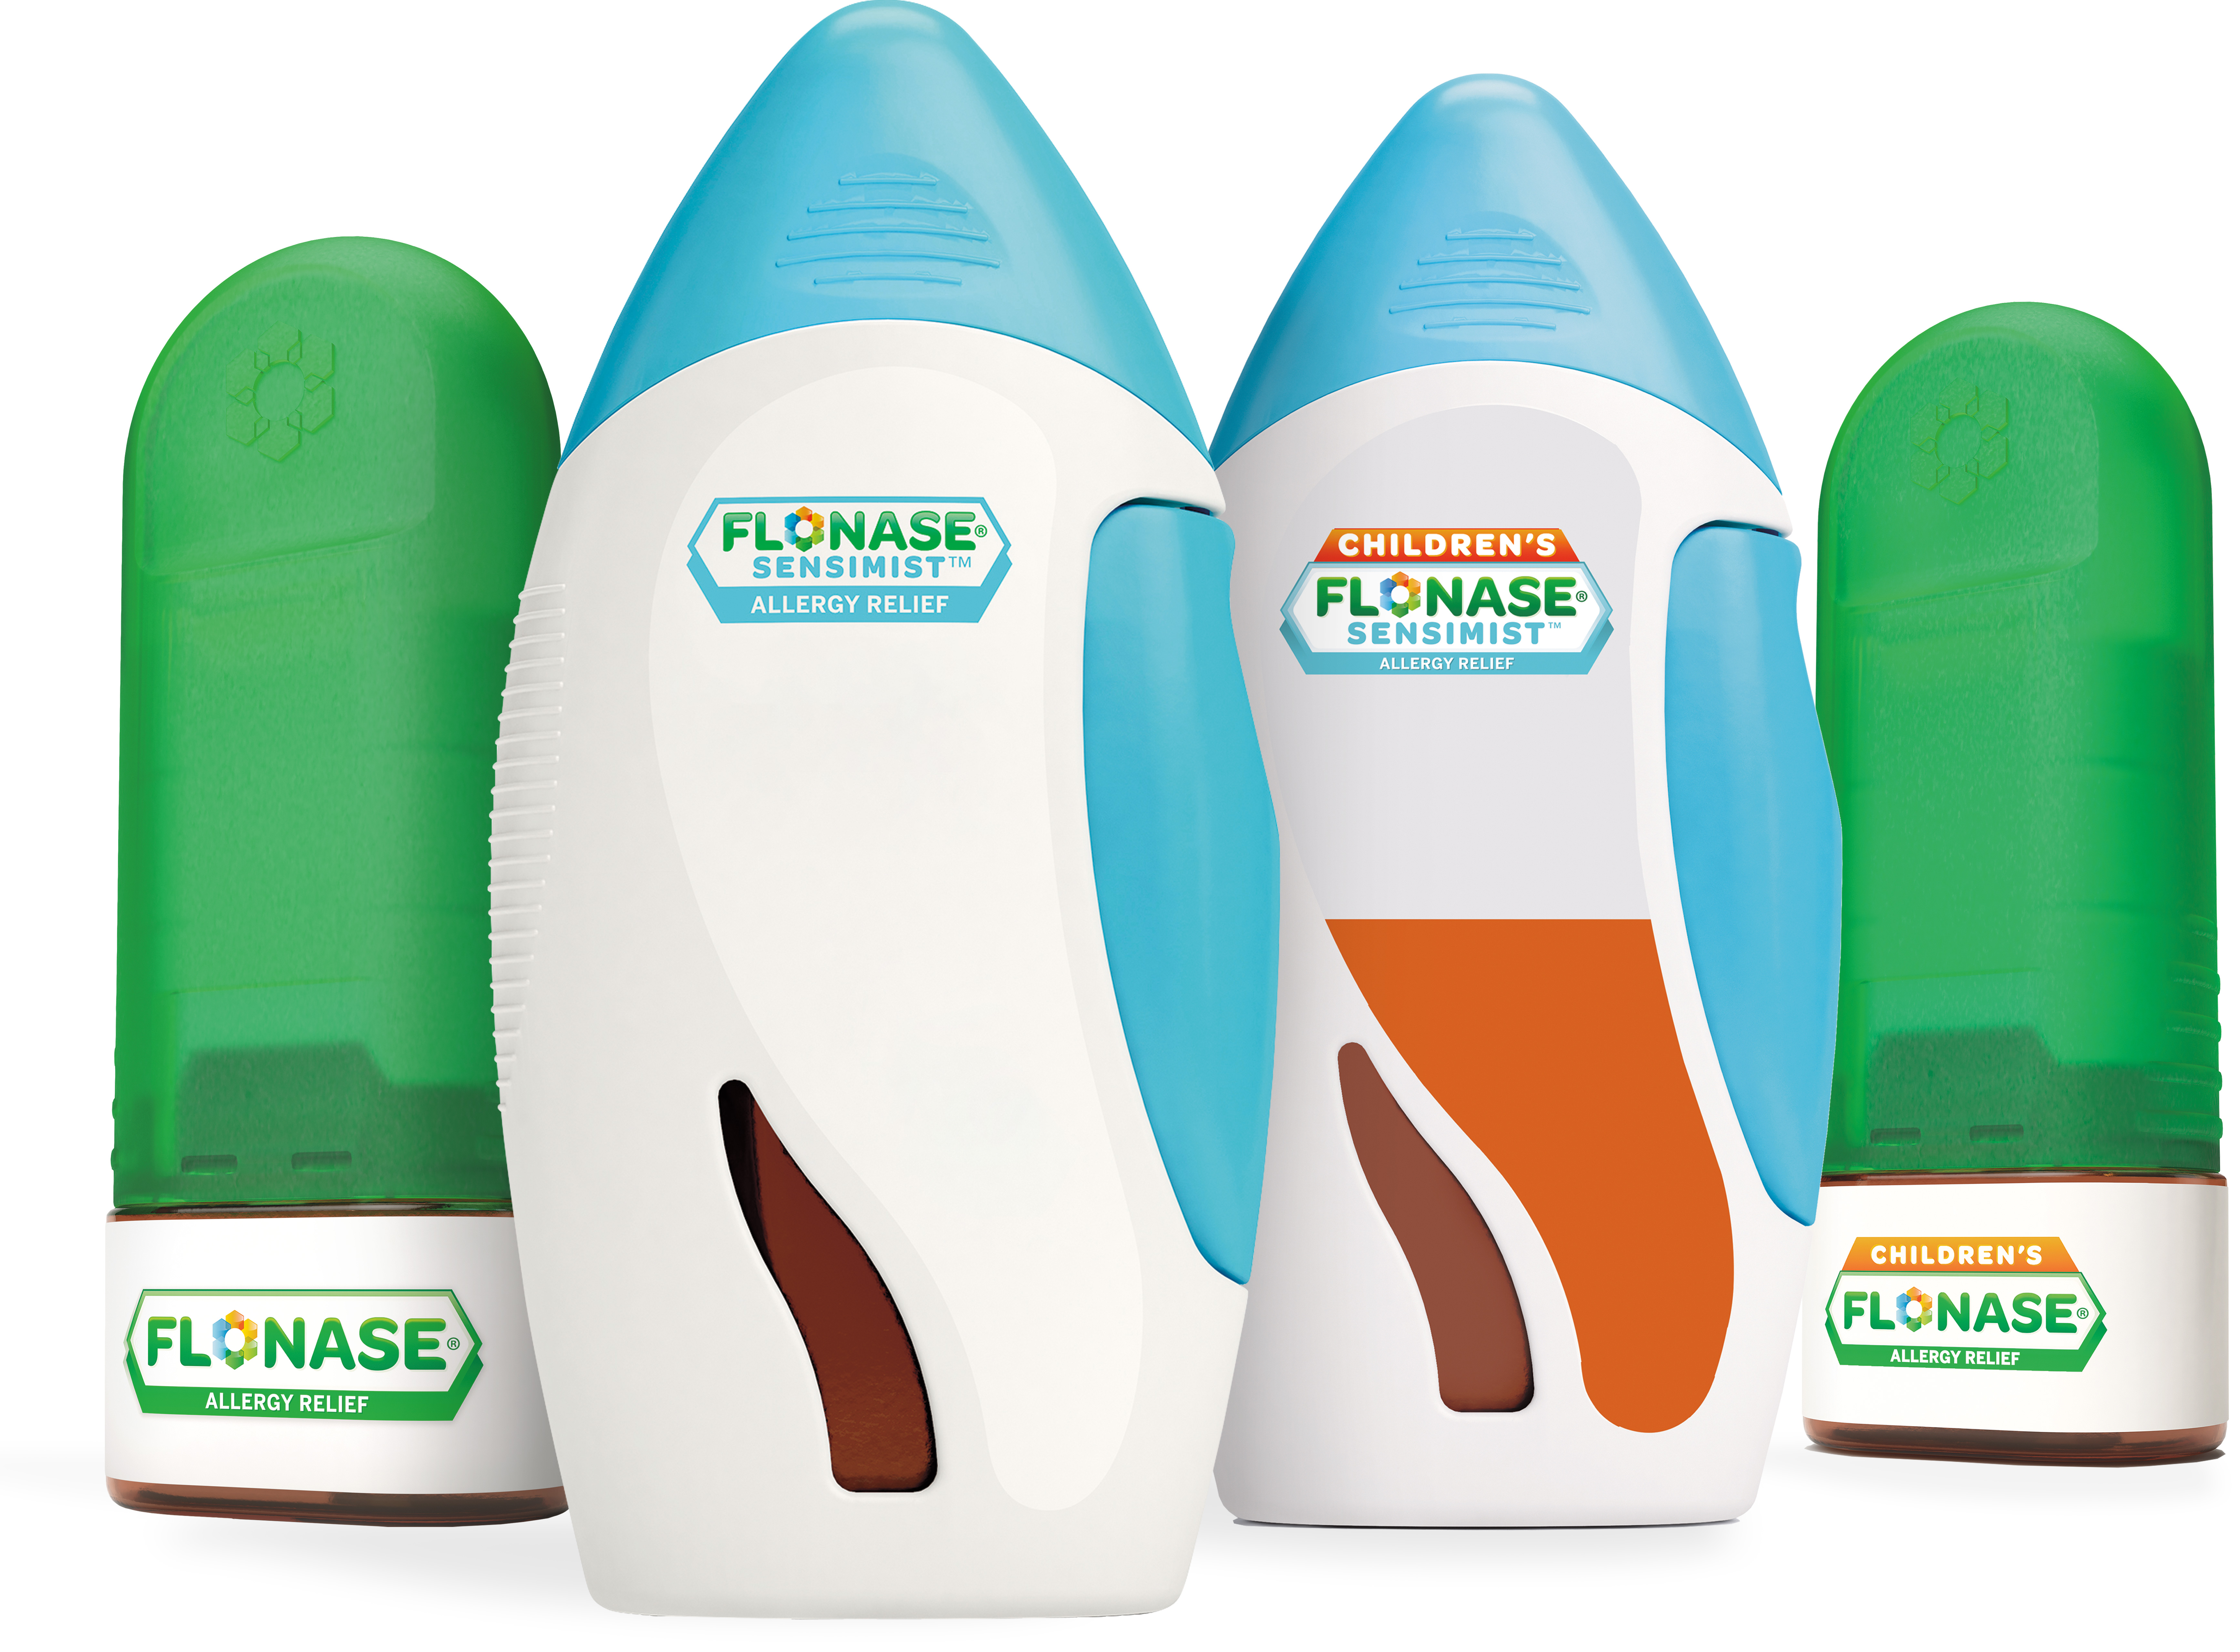 Flonase nasal spray products for allergy relief